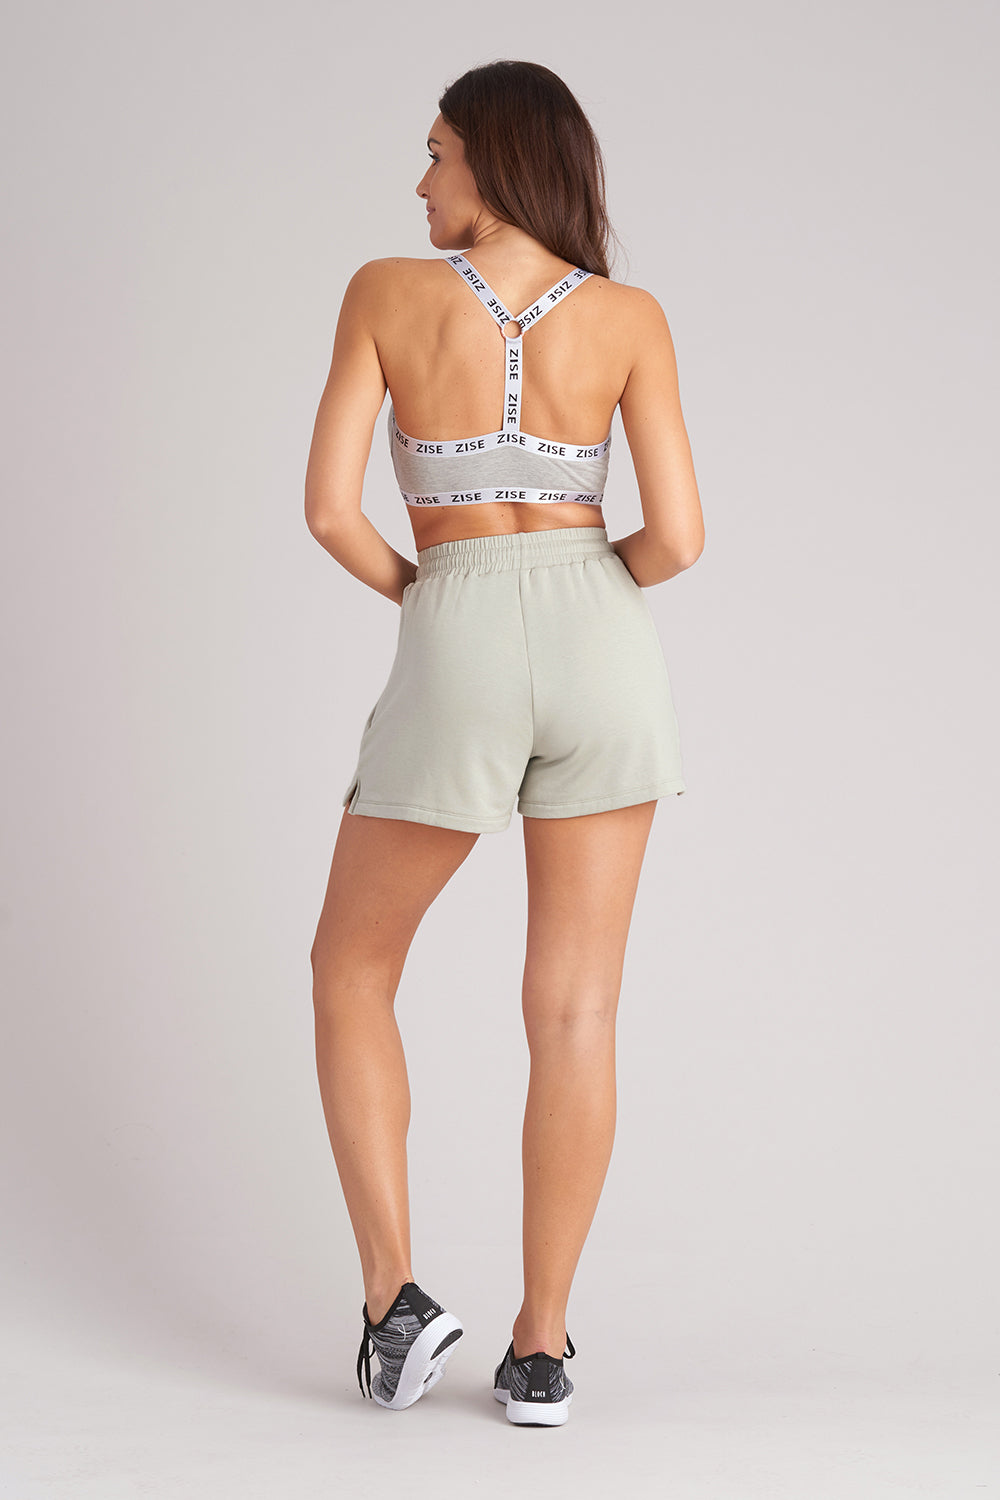 Zise Jeri Shorts - BLOCH US